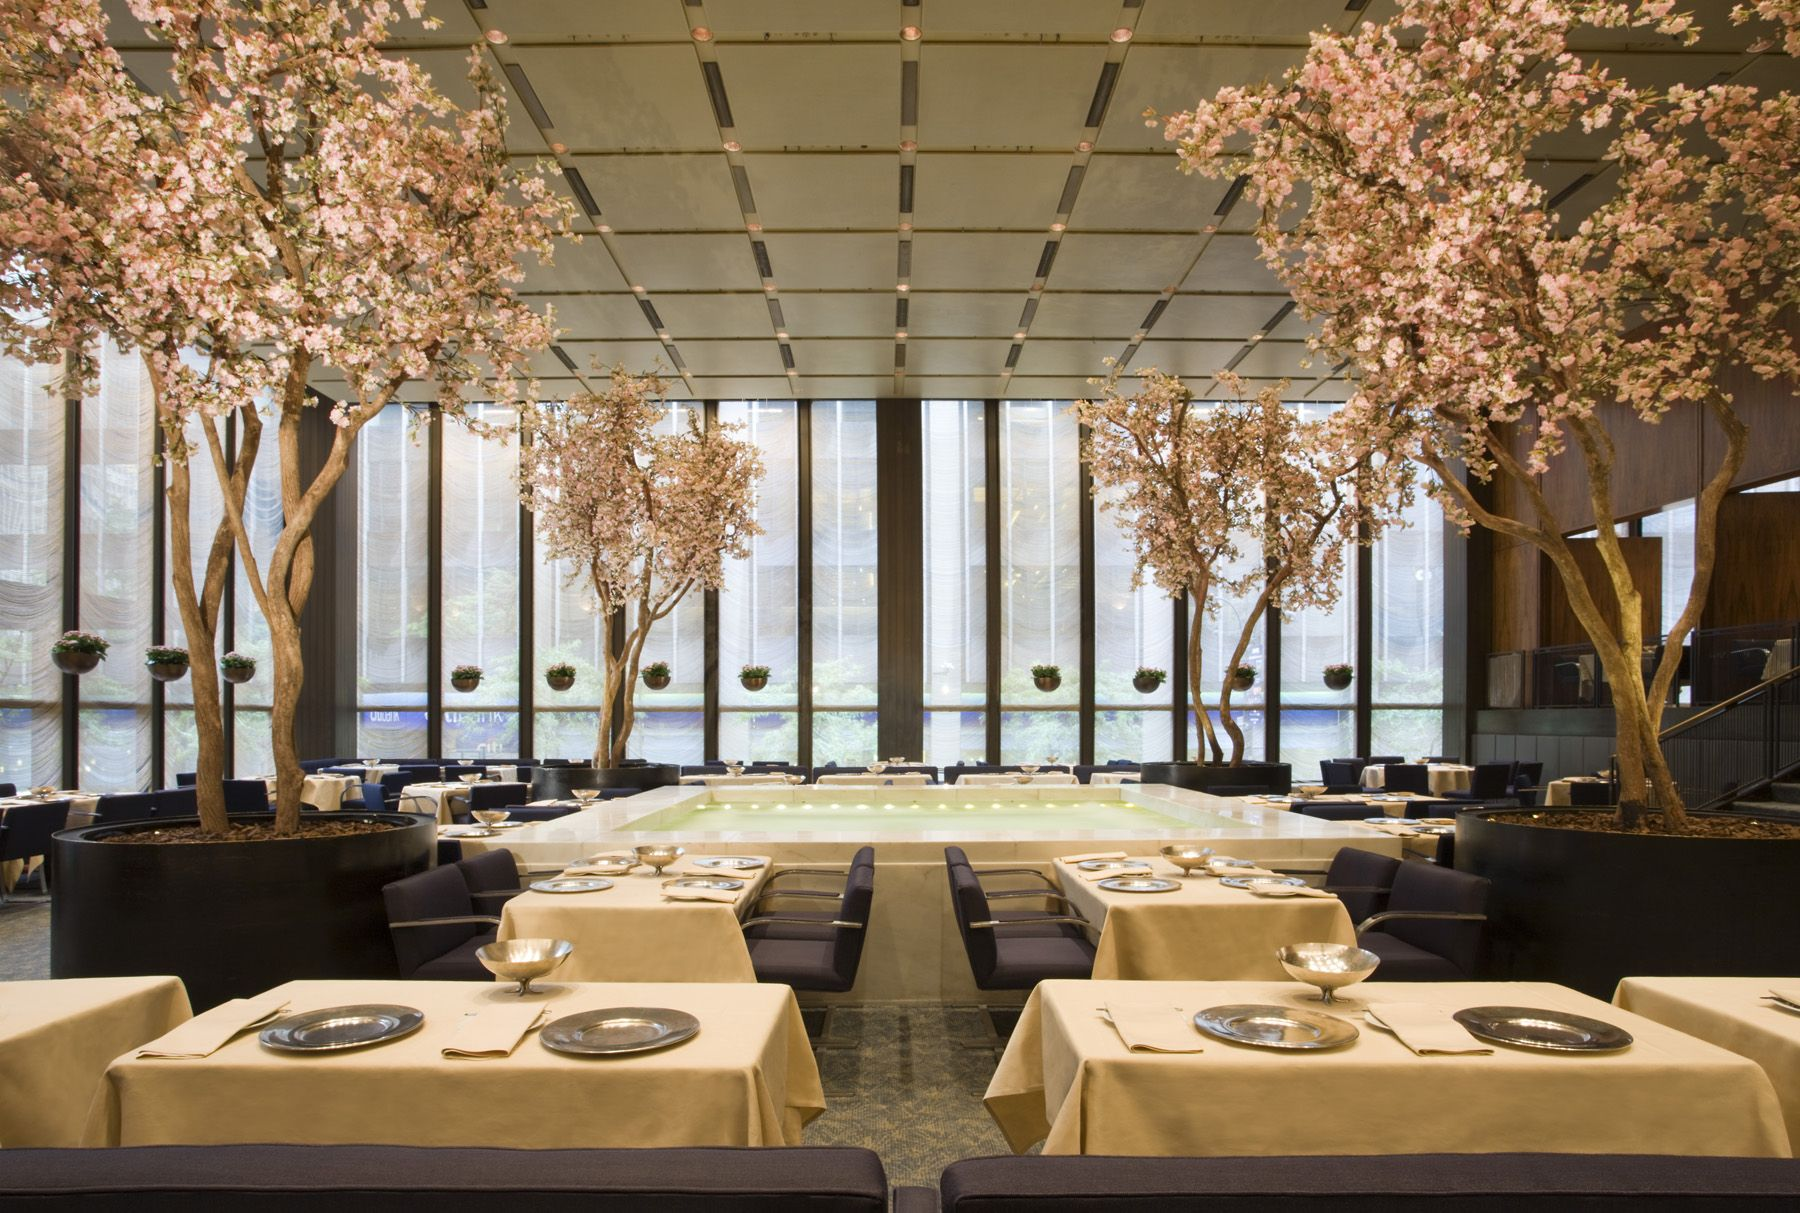 Top 10 Most Beautiful Restaurants In The World Luxuo